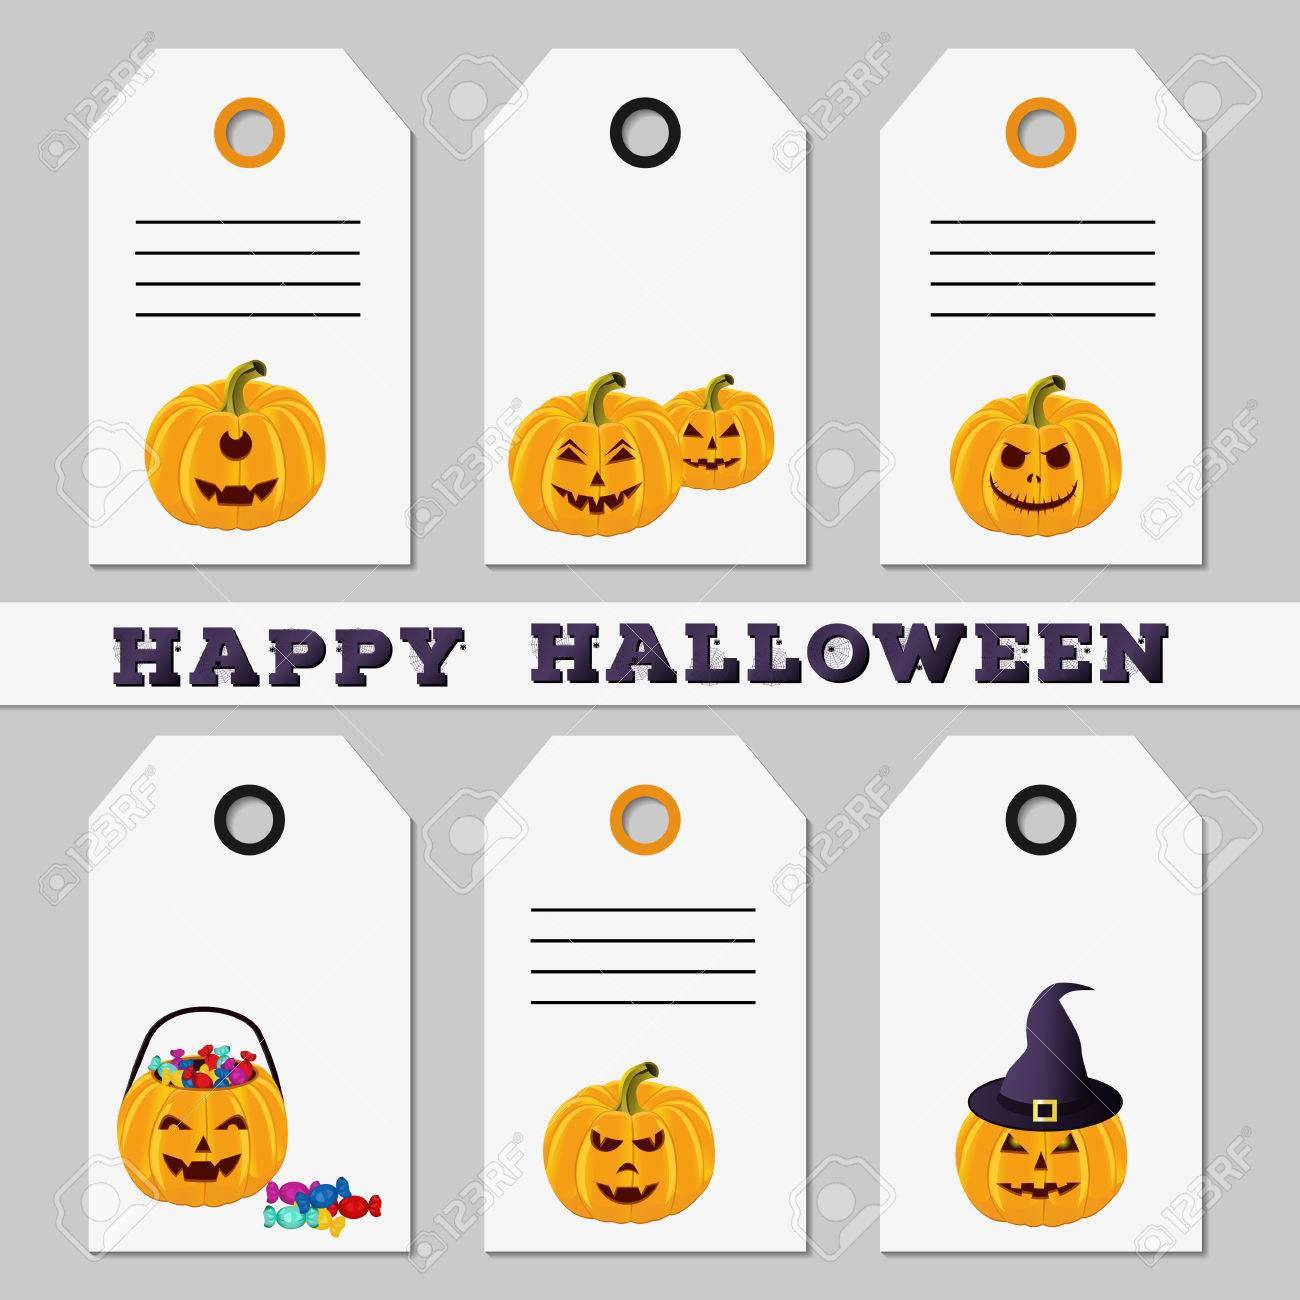 Set of Halloween sale discount offer or gift tags on white background. Template  sc 1 st  123RF.com & Set Of Halloween Sale Discount Offer Or Gift Tags On White ...